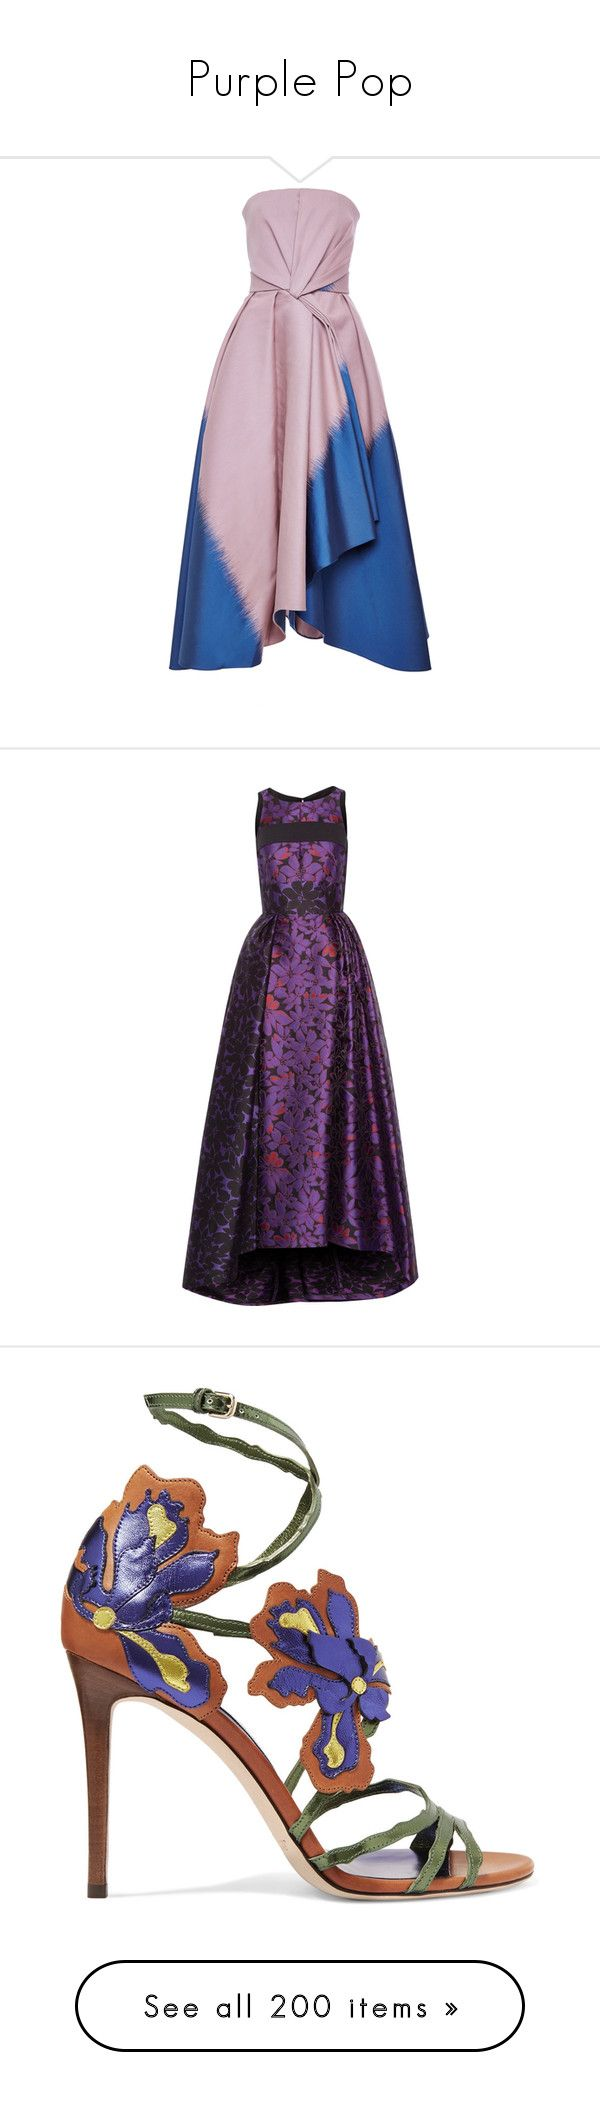 """Purple Pop"" by brassbracelets ❤ liked on Polyvore featuring dresses, gowns, strapless midi dress, midi dress, knot dresses, full midi skirts, jacquard dress, bags, handbags and clutches"